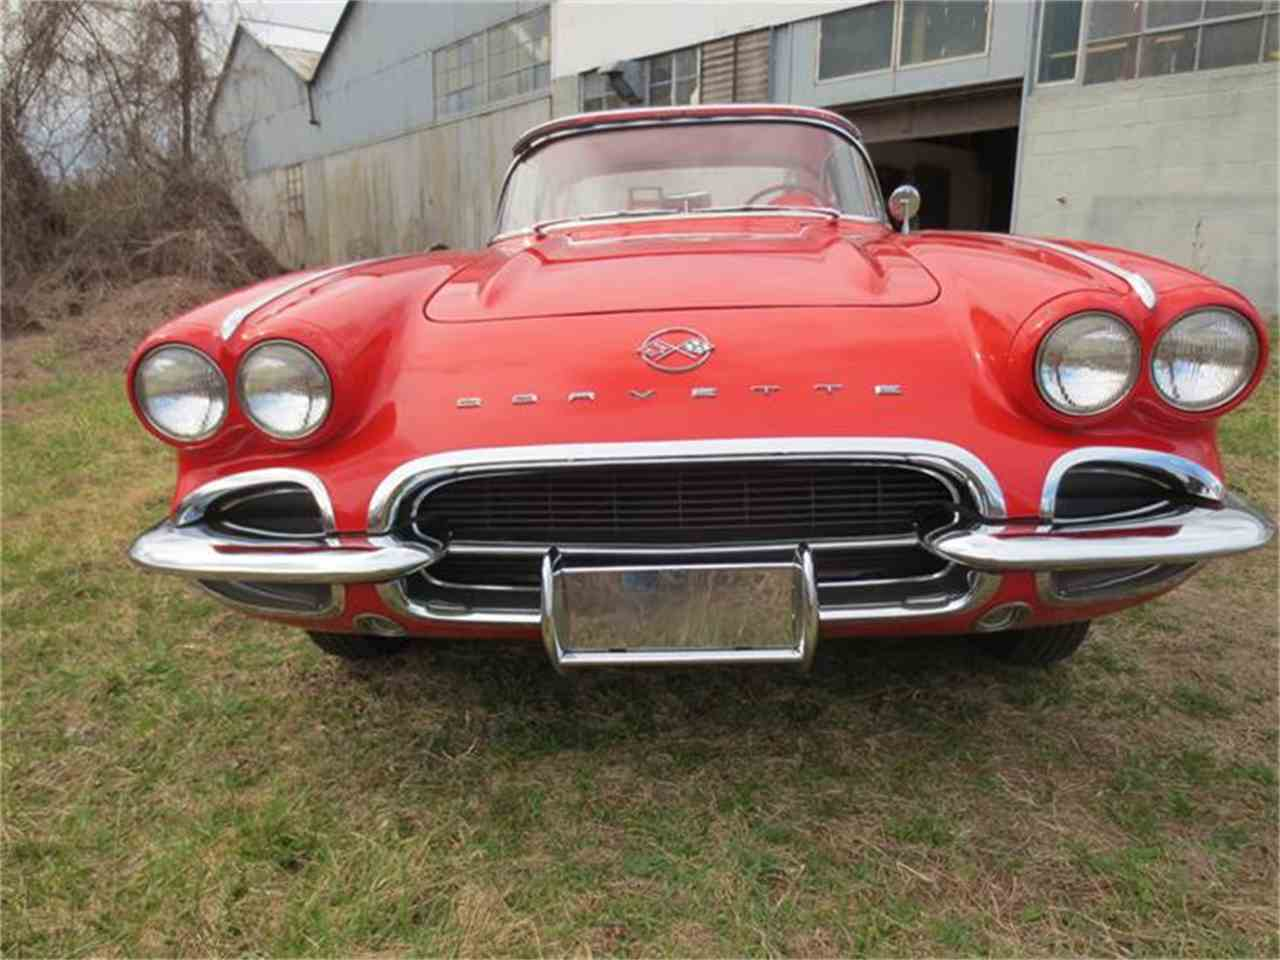 Large Picture of 1962 Corvette - $89,900.00 - HB42